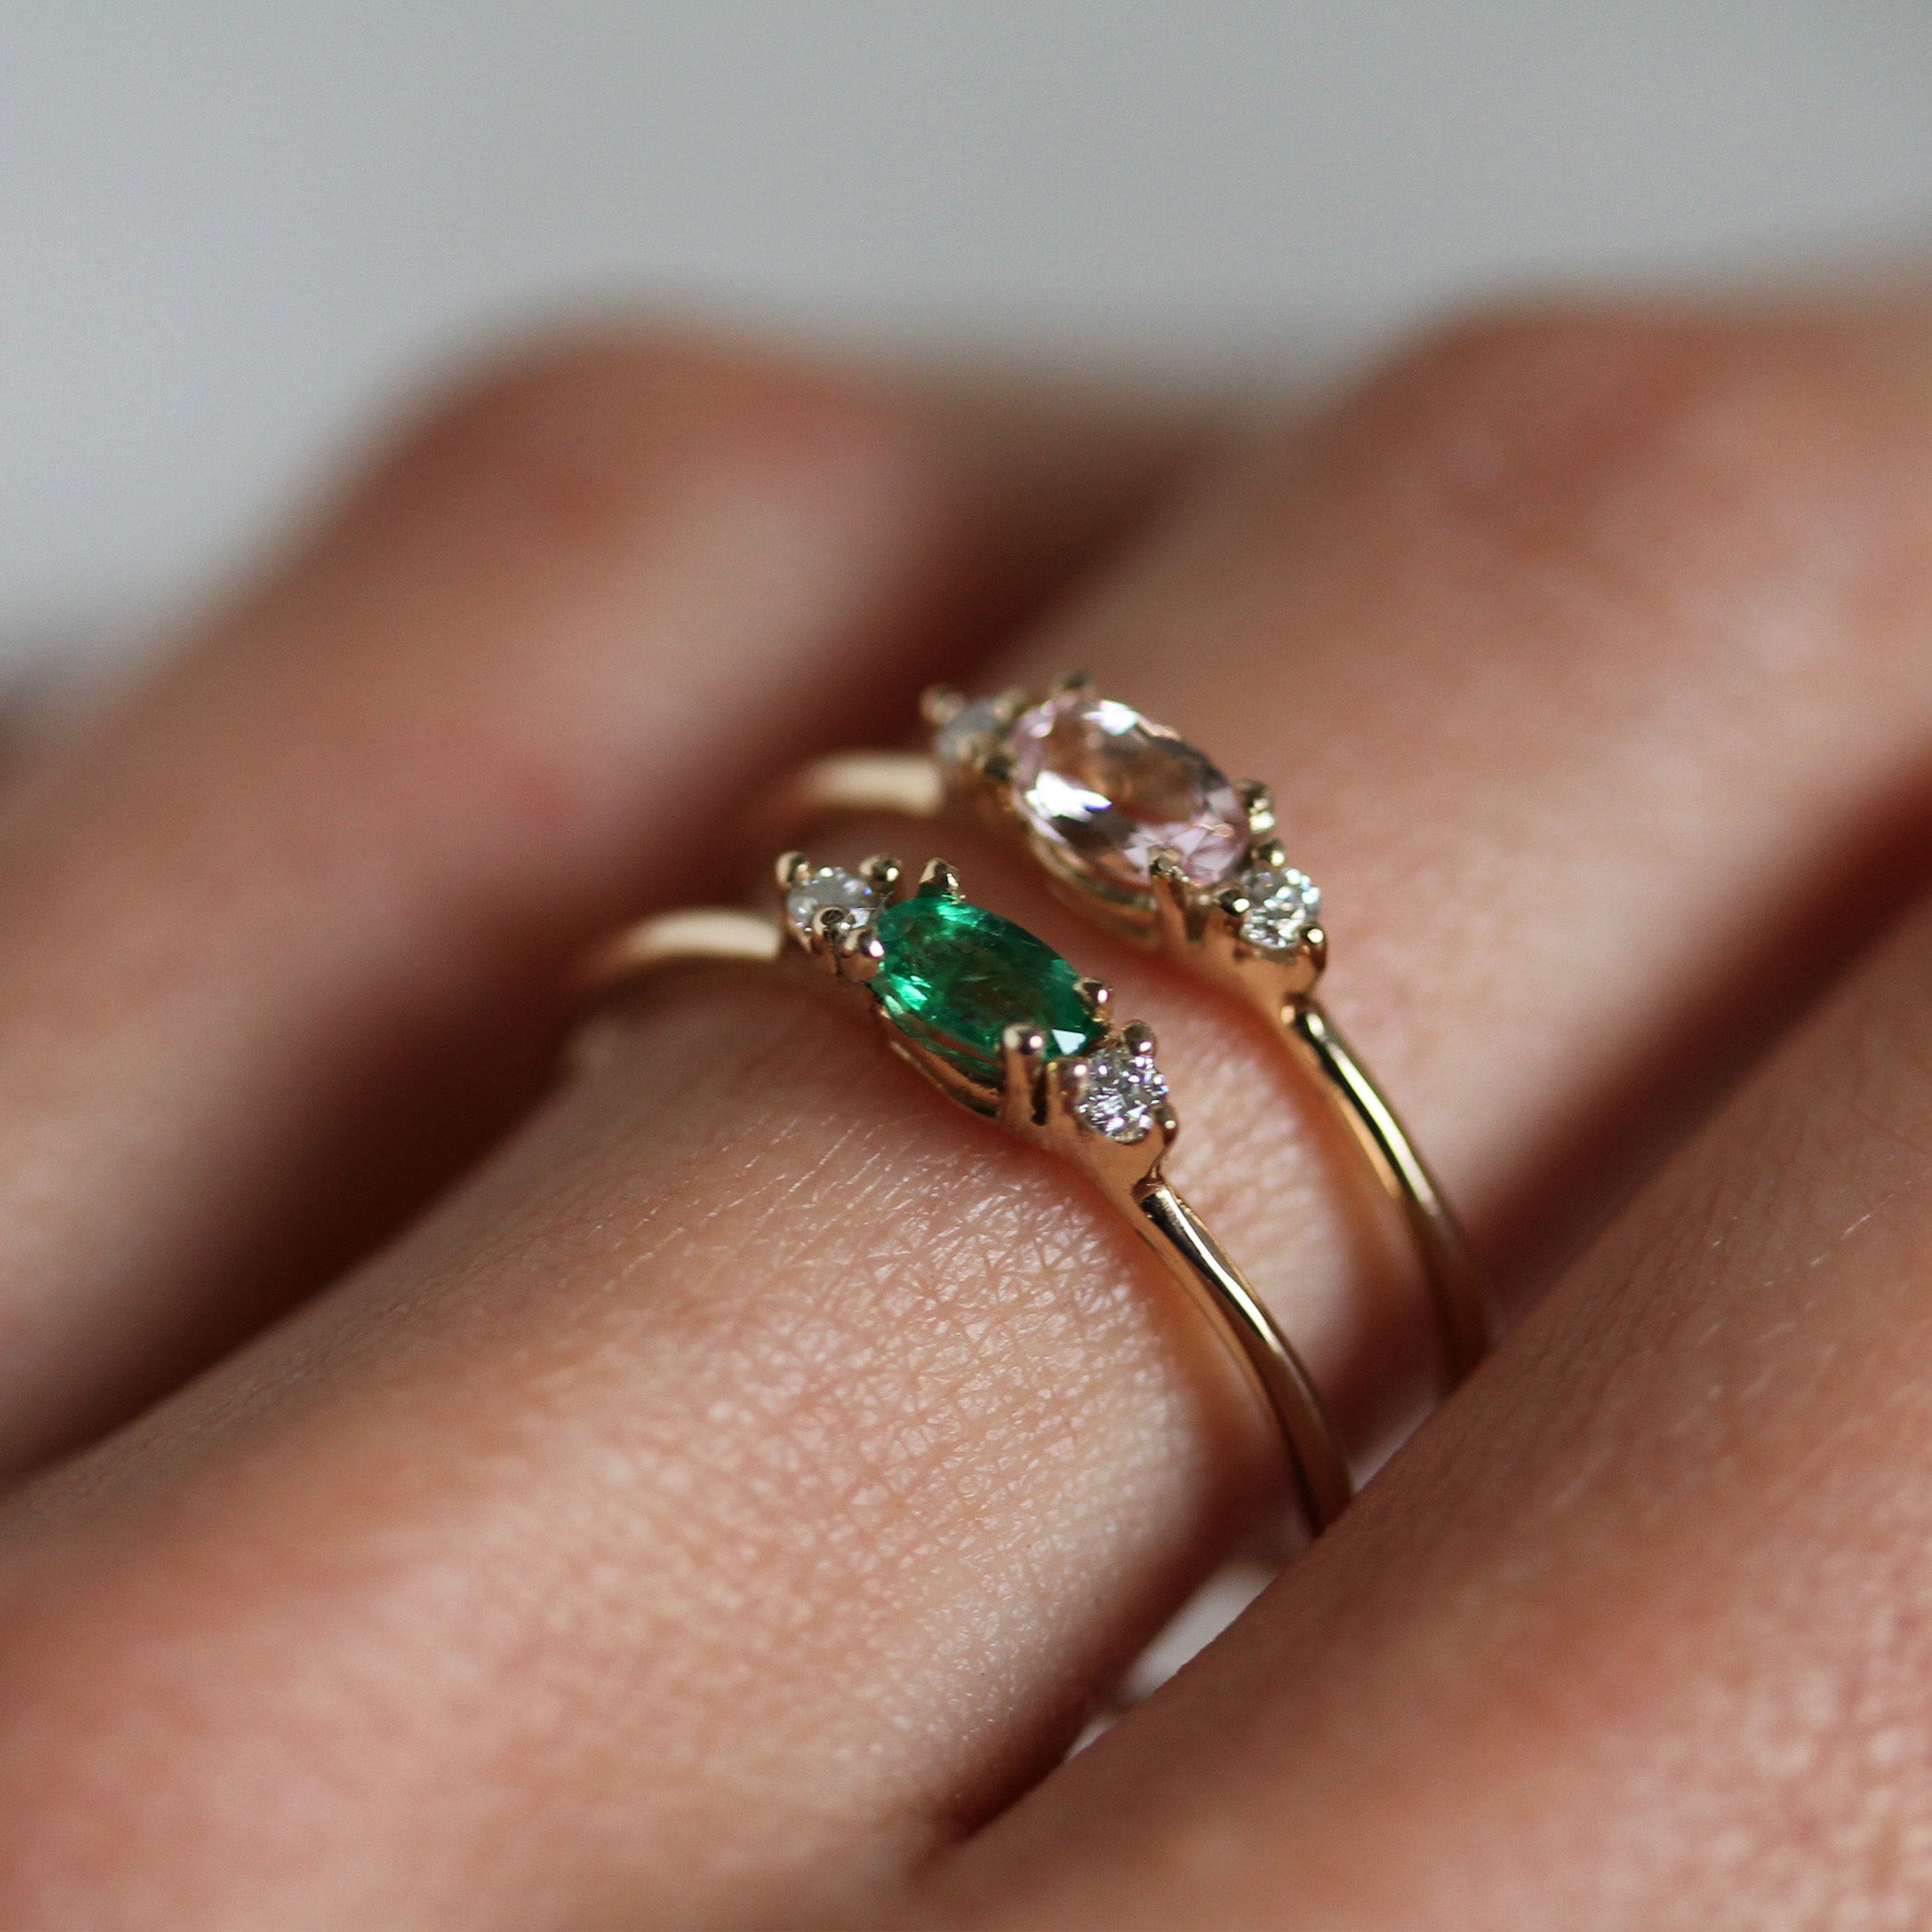 dealer shoulder engagement cameo wedding direct ring emerald product diamond cut halo double phenomenal